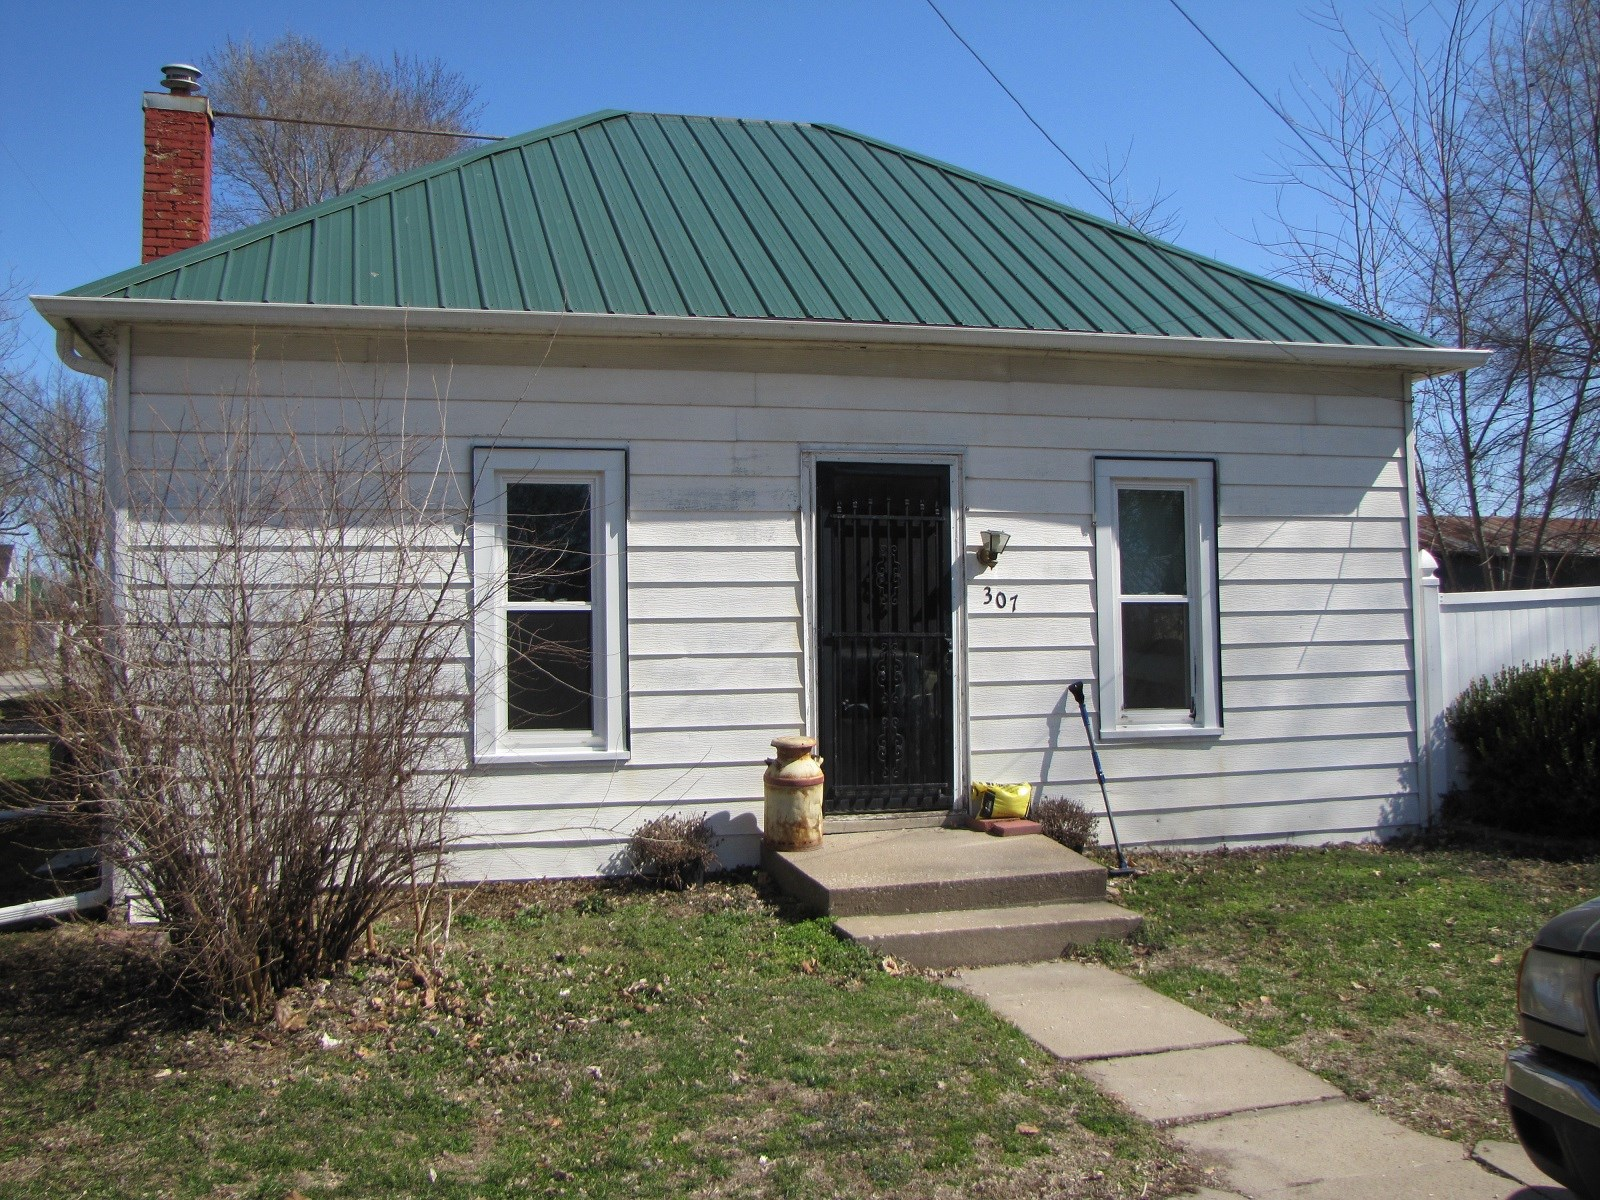 2 BEDROOM HOME NE MISSOURI FOR SALE, RESIDENTIAL HOME NE MO